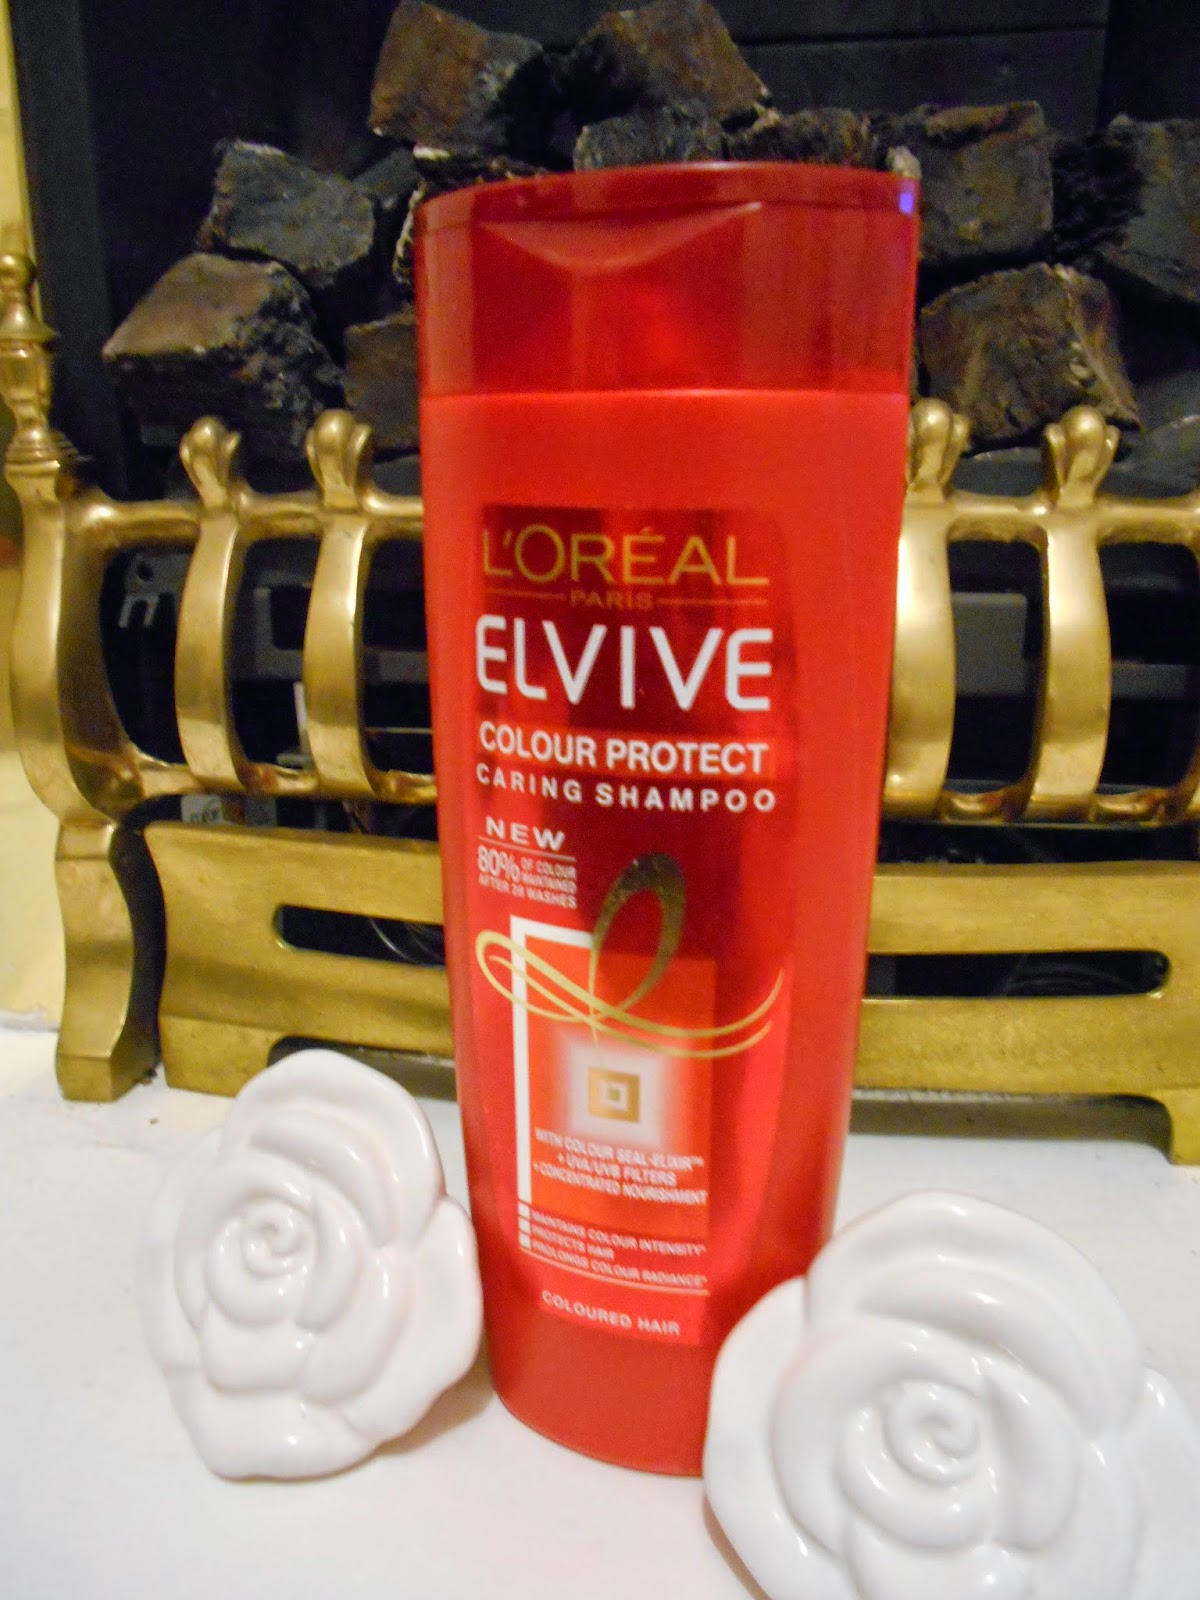 L'Oreal Elvive Colour Protect - Shampoo